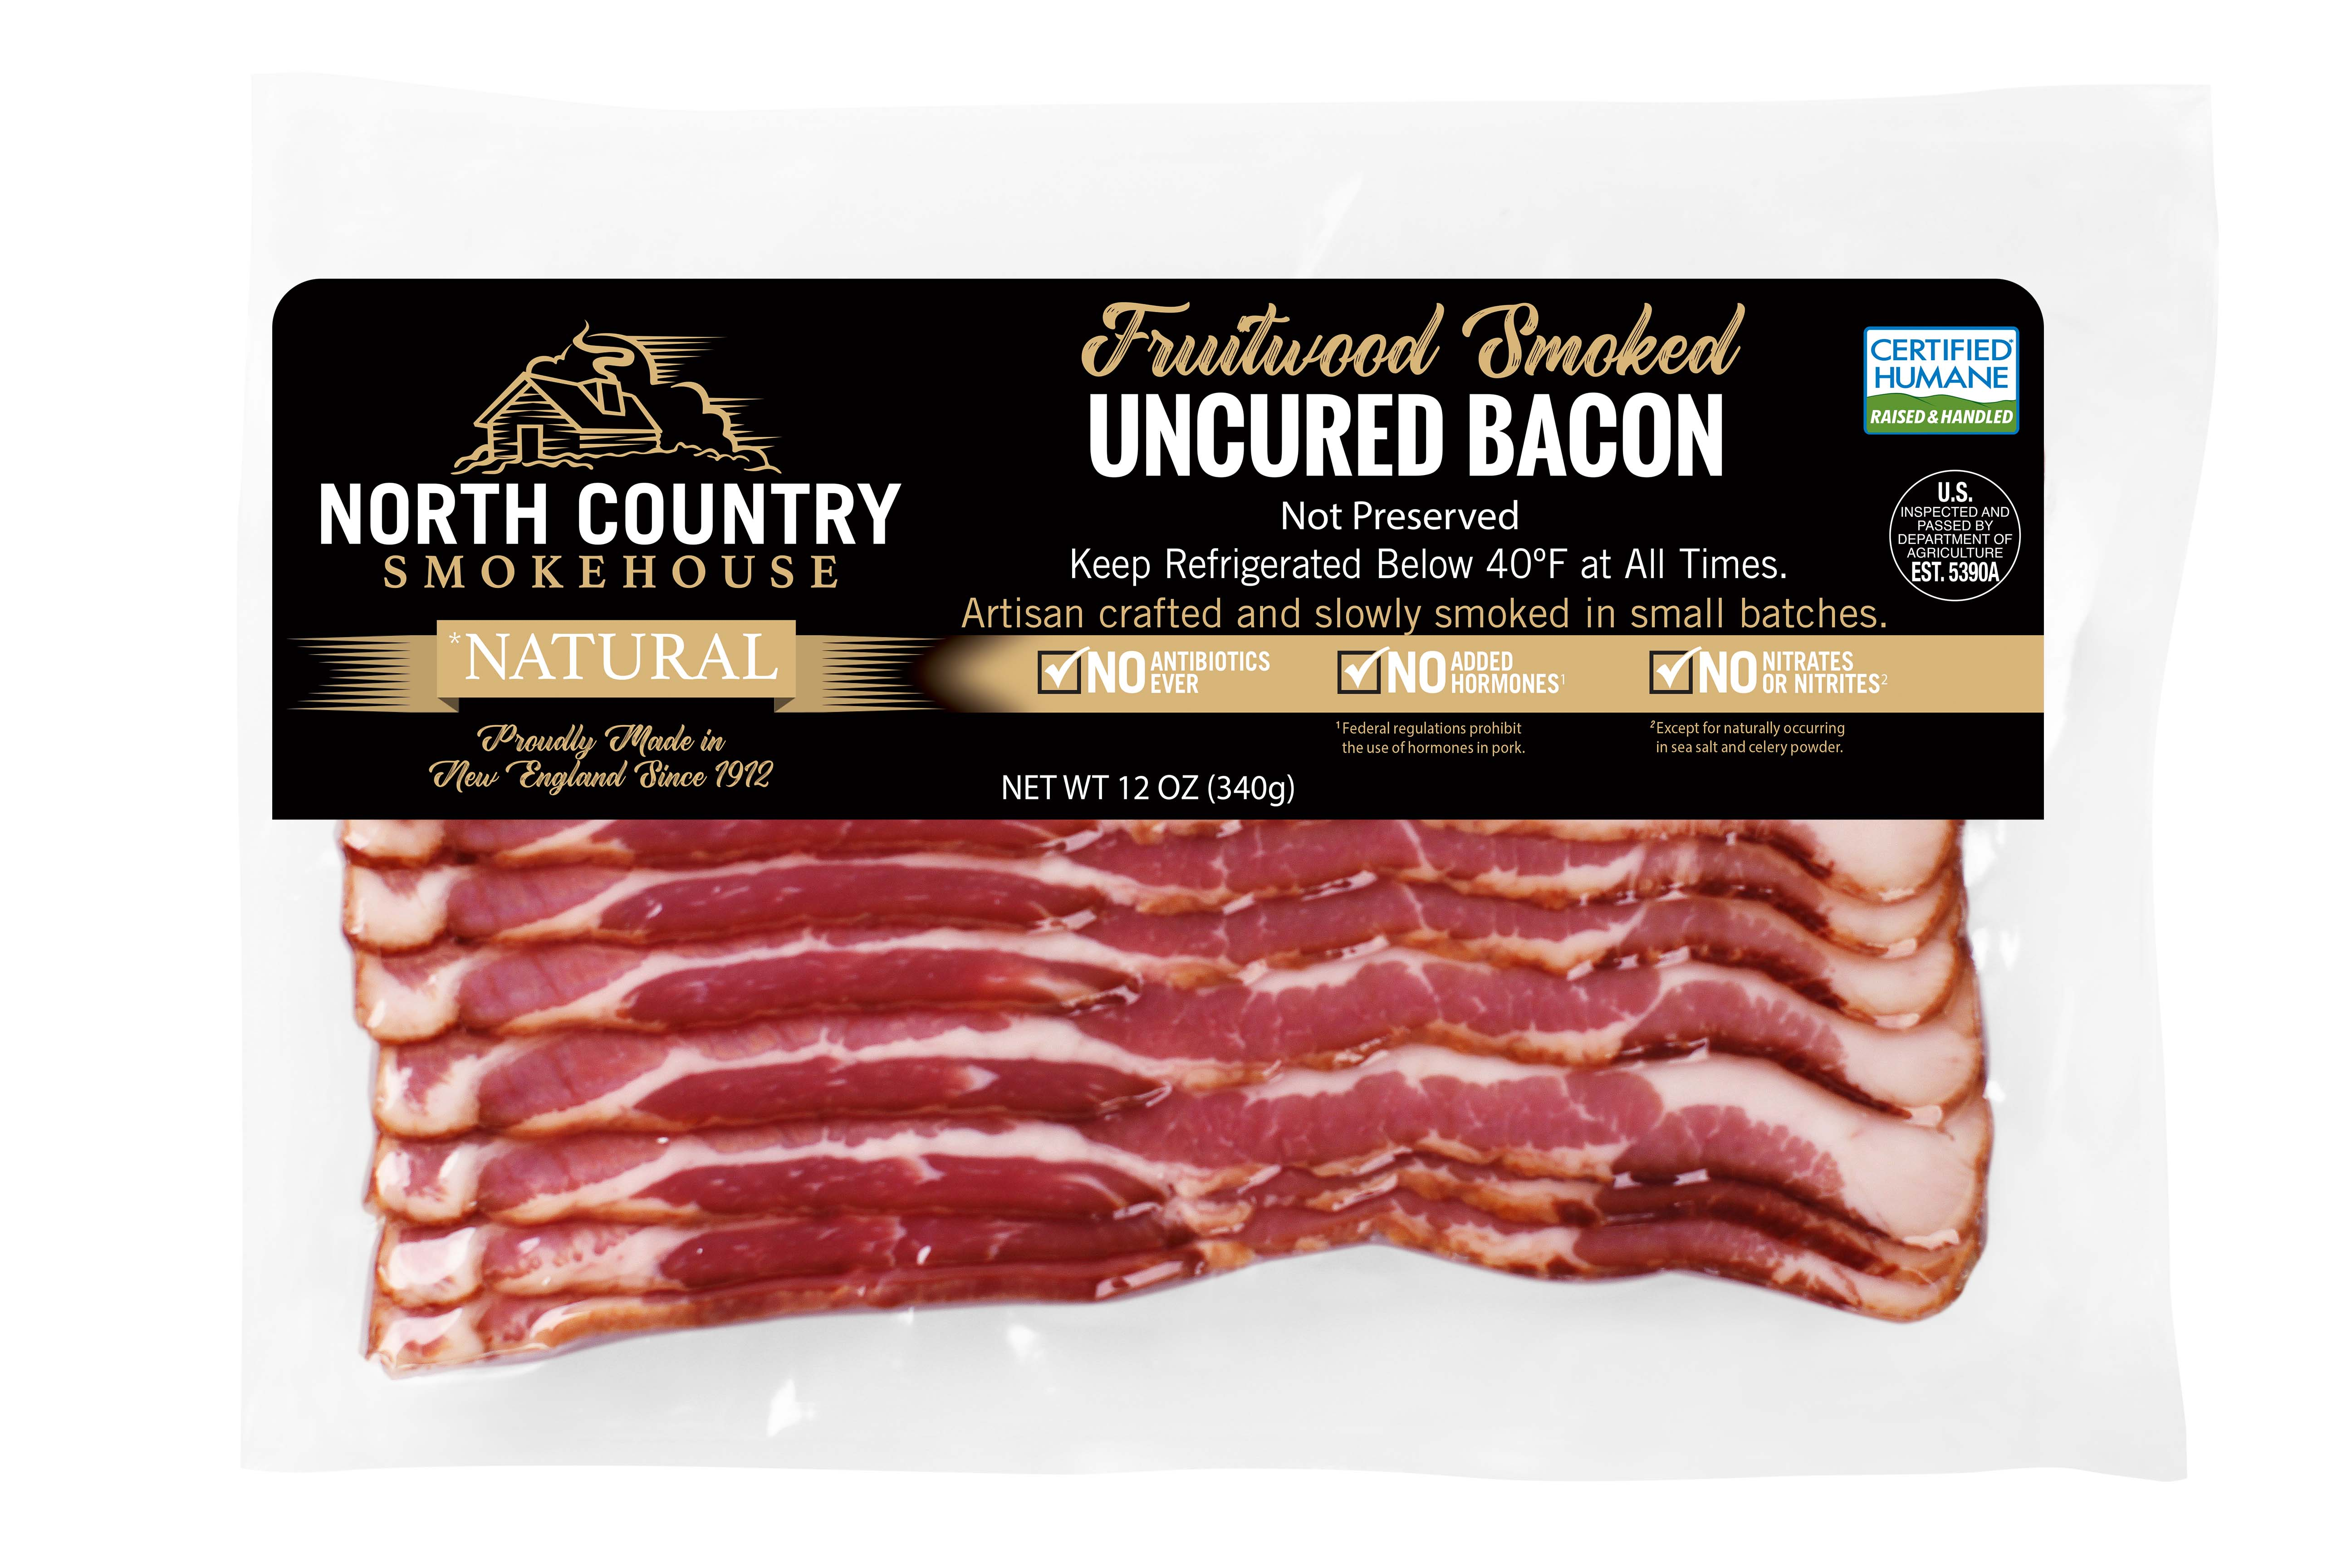 Natural Fruitwood Smoked Bacon - 2, 12 oz. packages